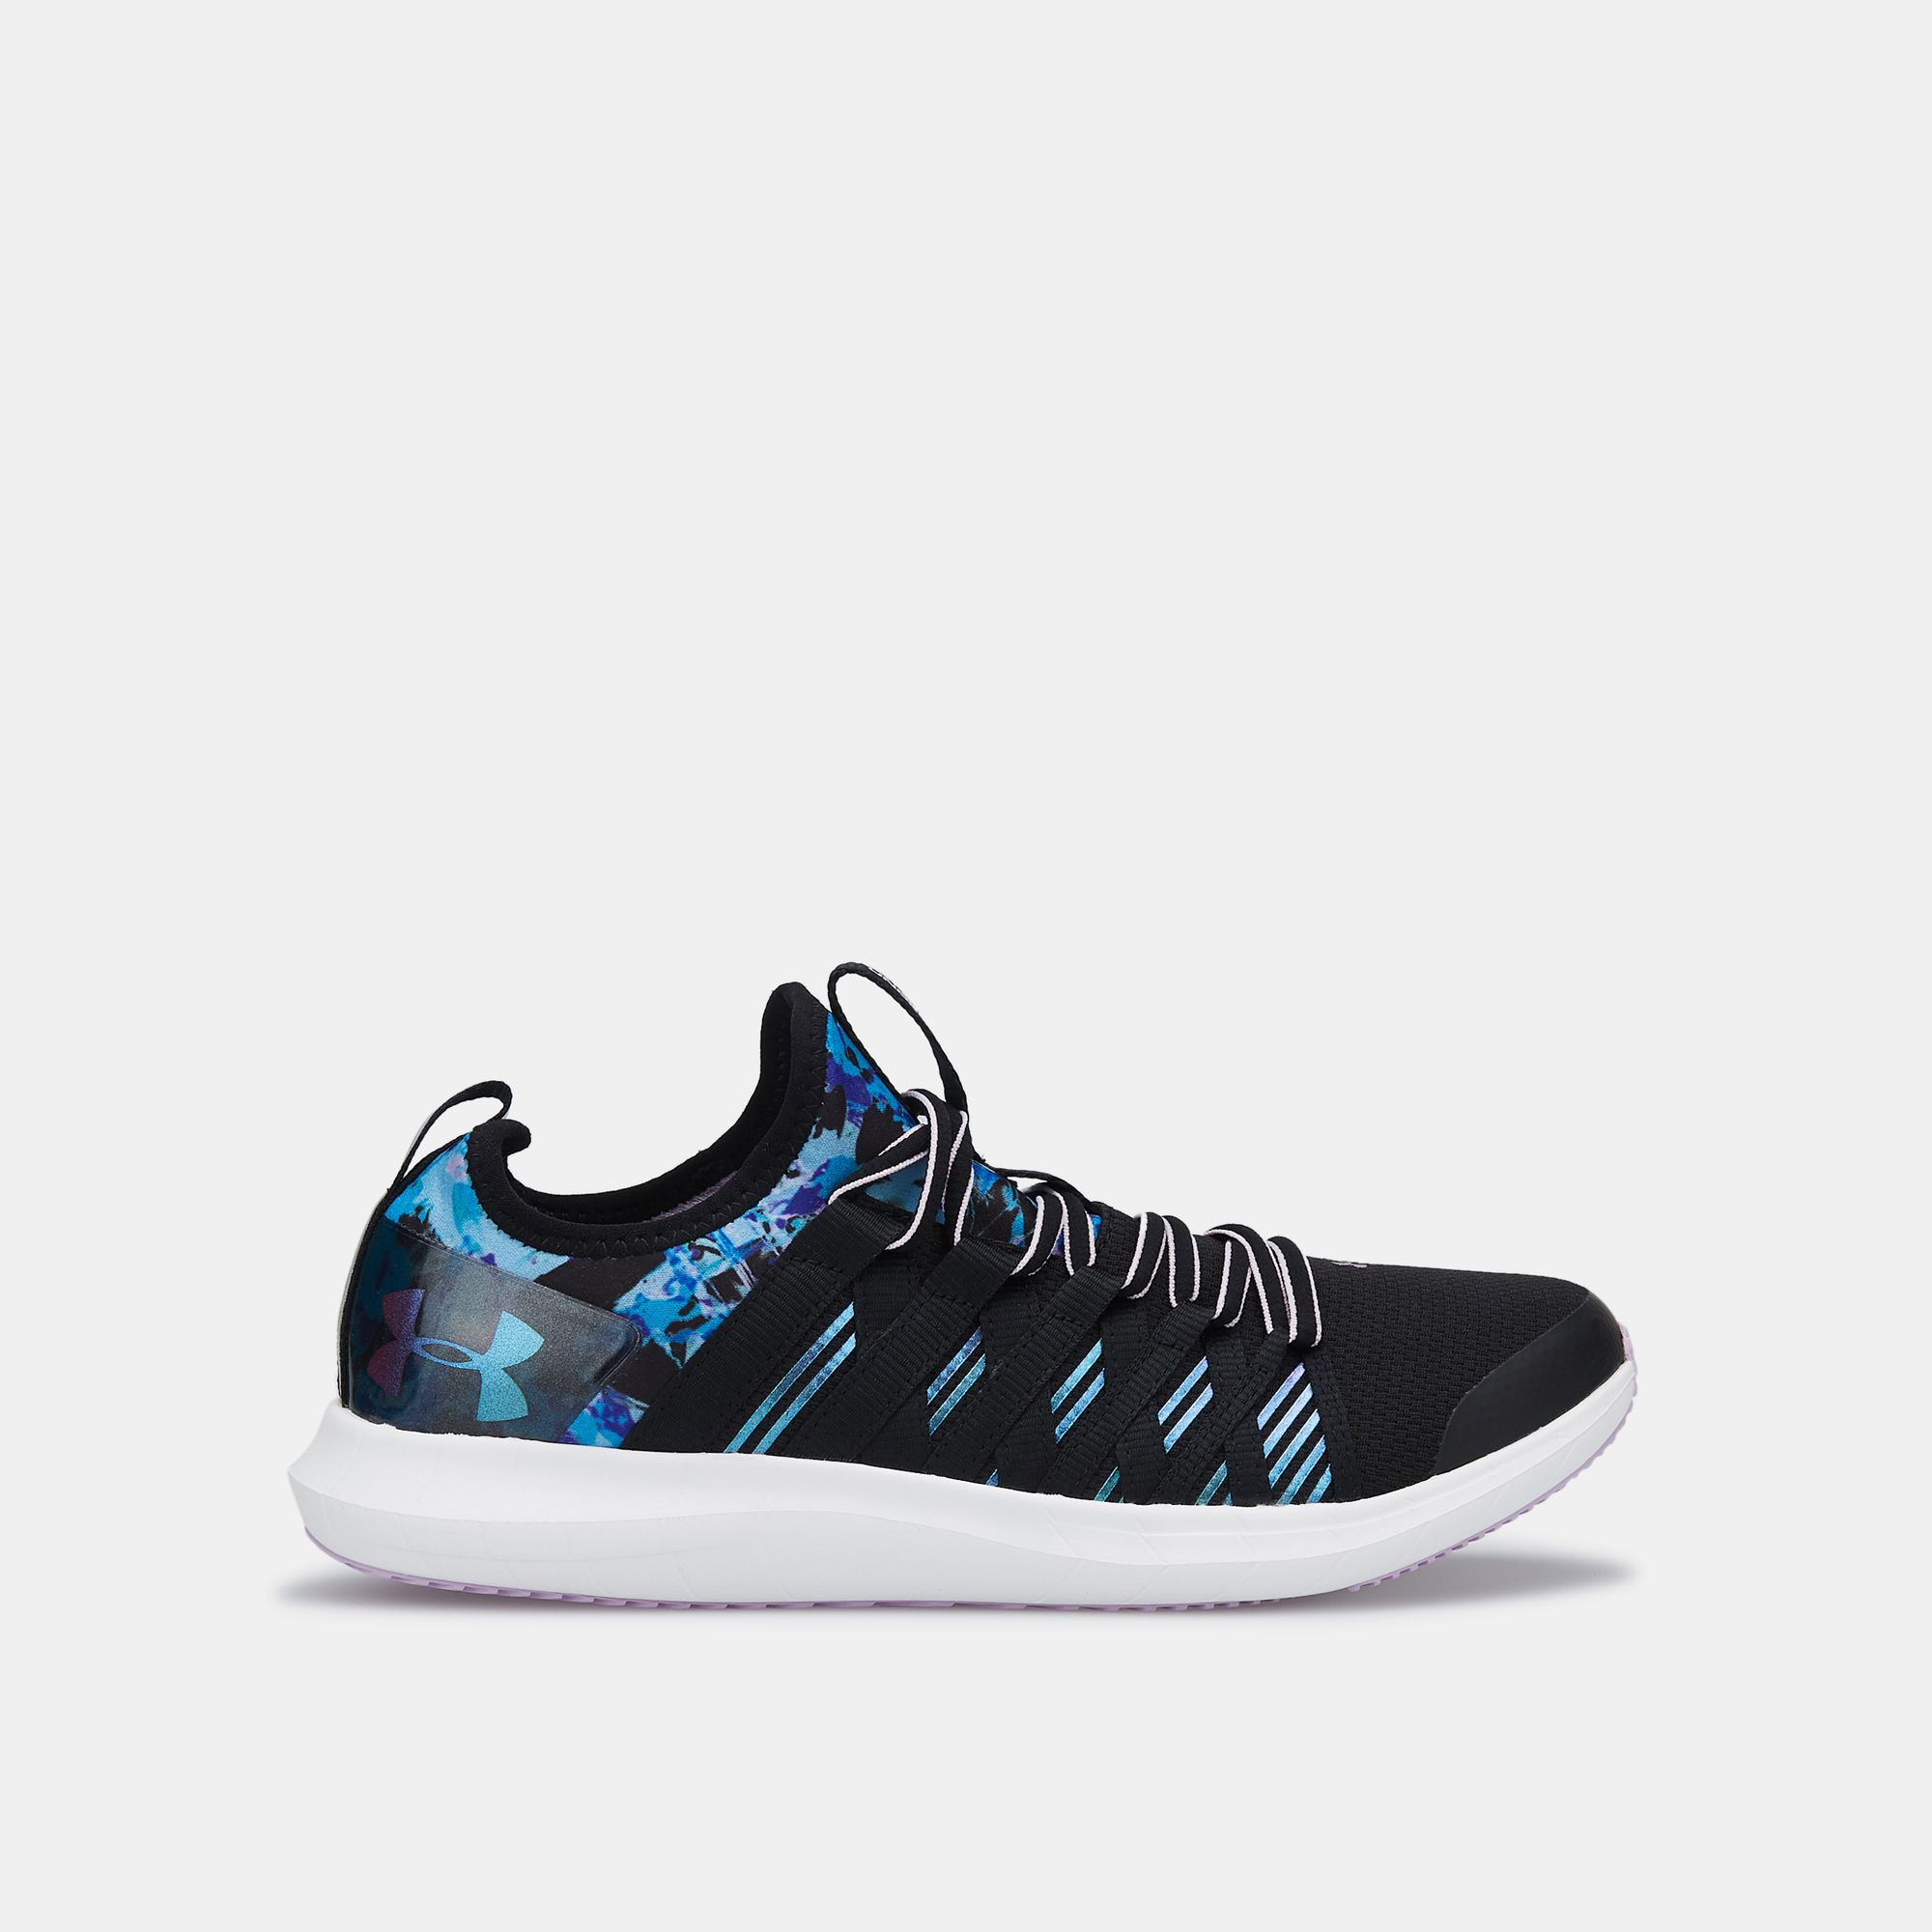 under armour infinity youth sneaker